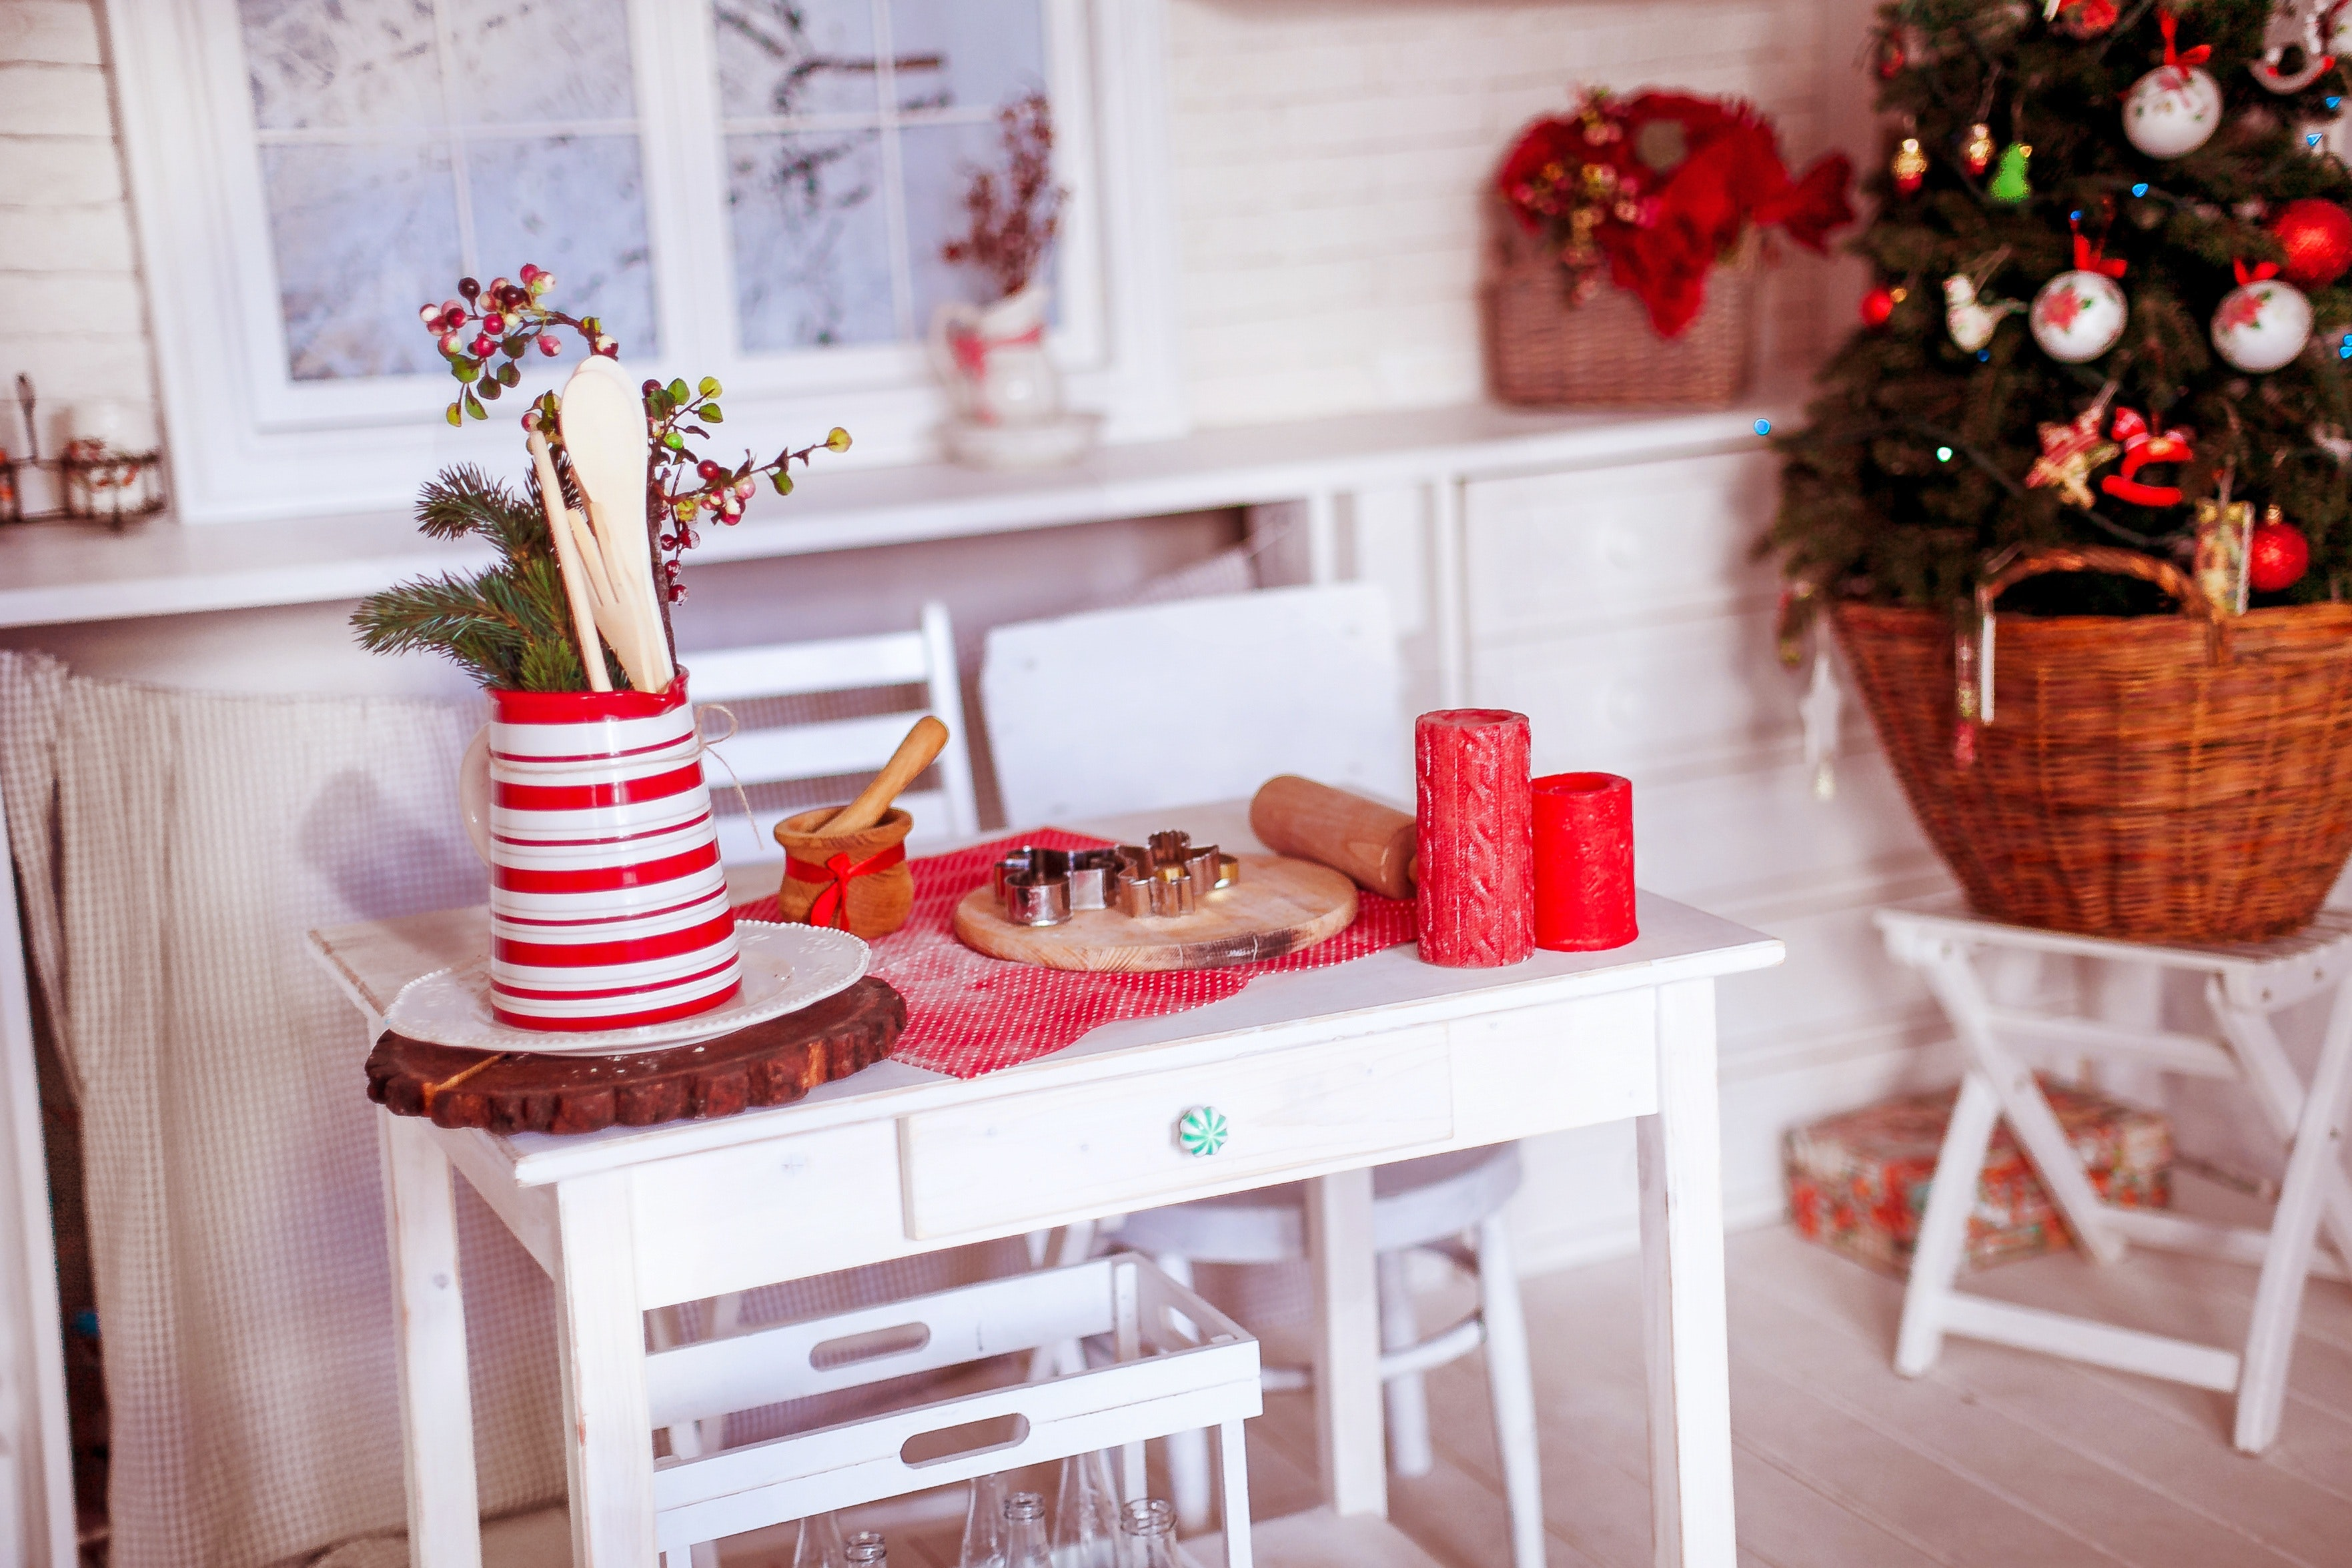 Christmas Decorations on Table, Candles, Interior design, Wood, Window, HQ Photo